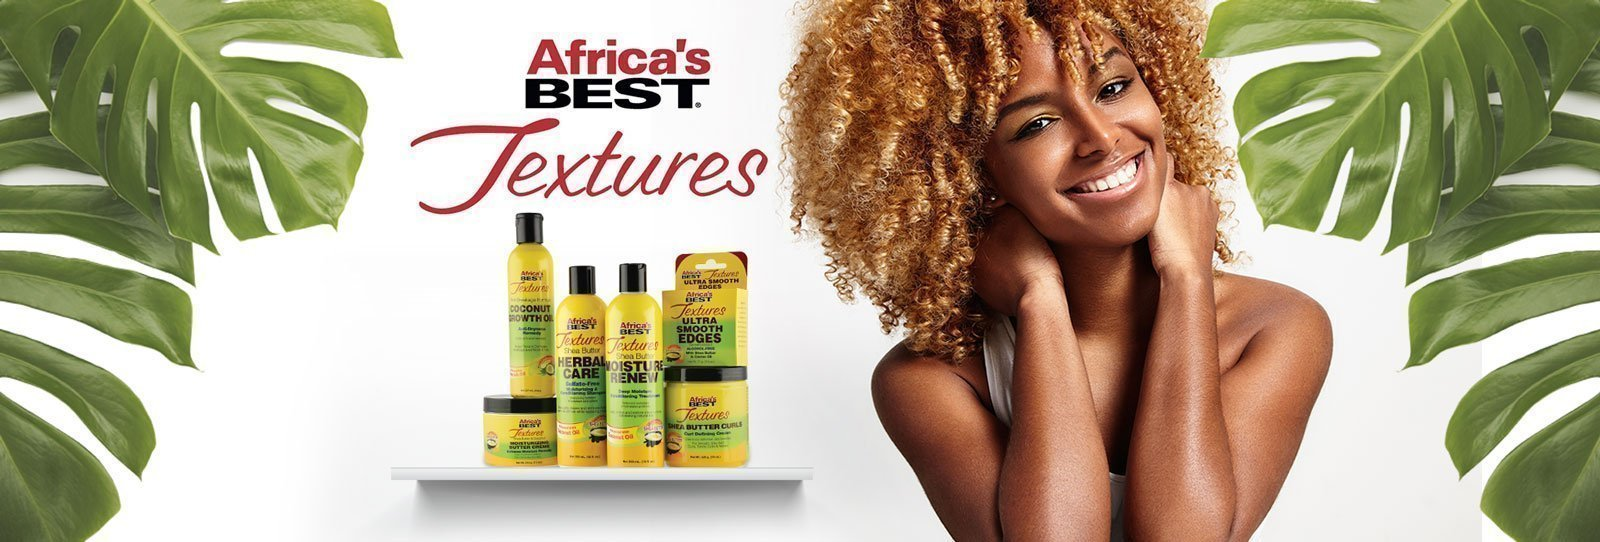 Africa's Best Textures Collection